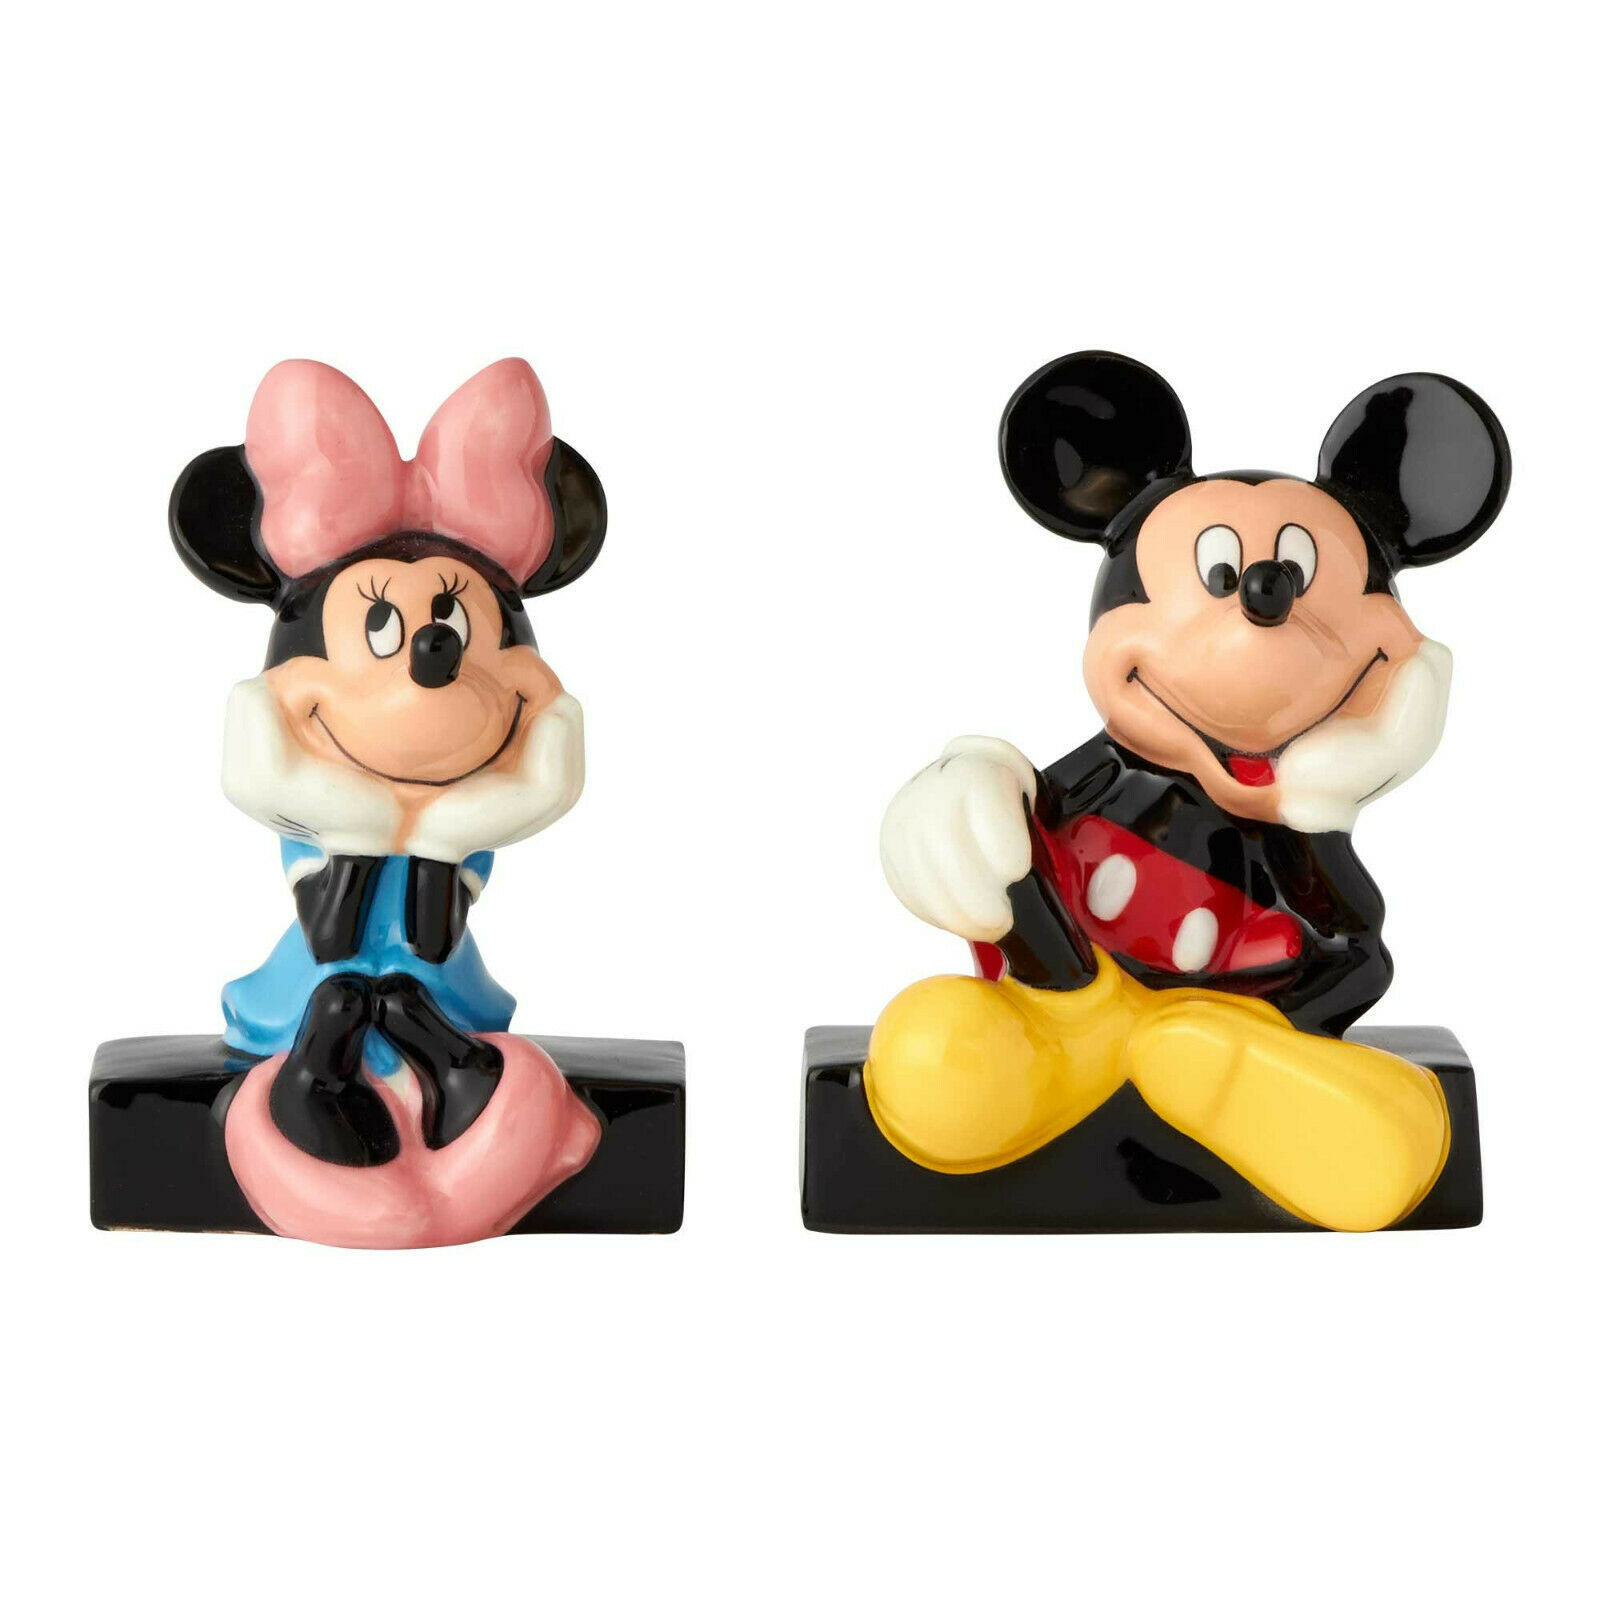 Disney Mickey & Minnie Mouse Salt & Pepper Shakers Set Collectible Gift Ceramic